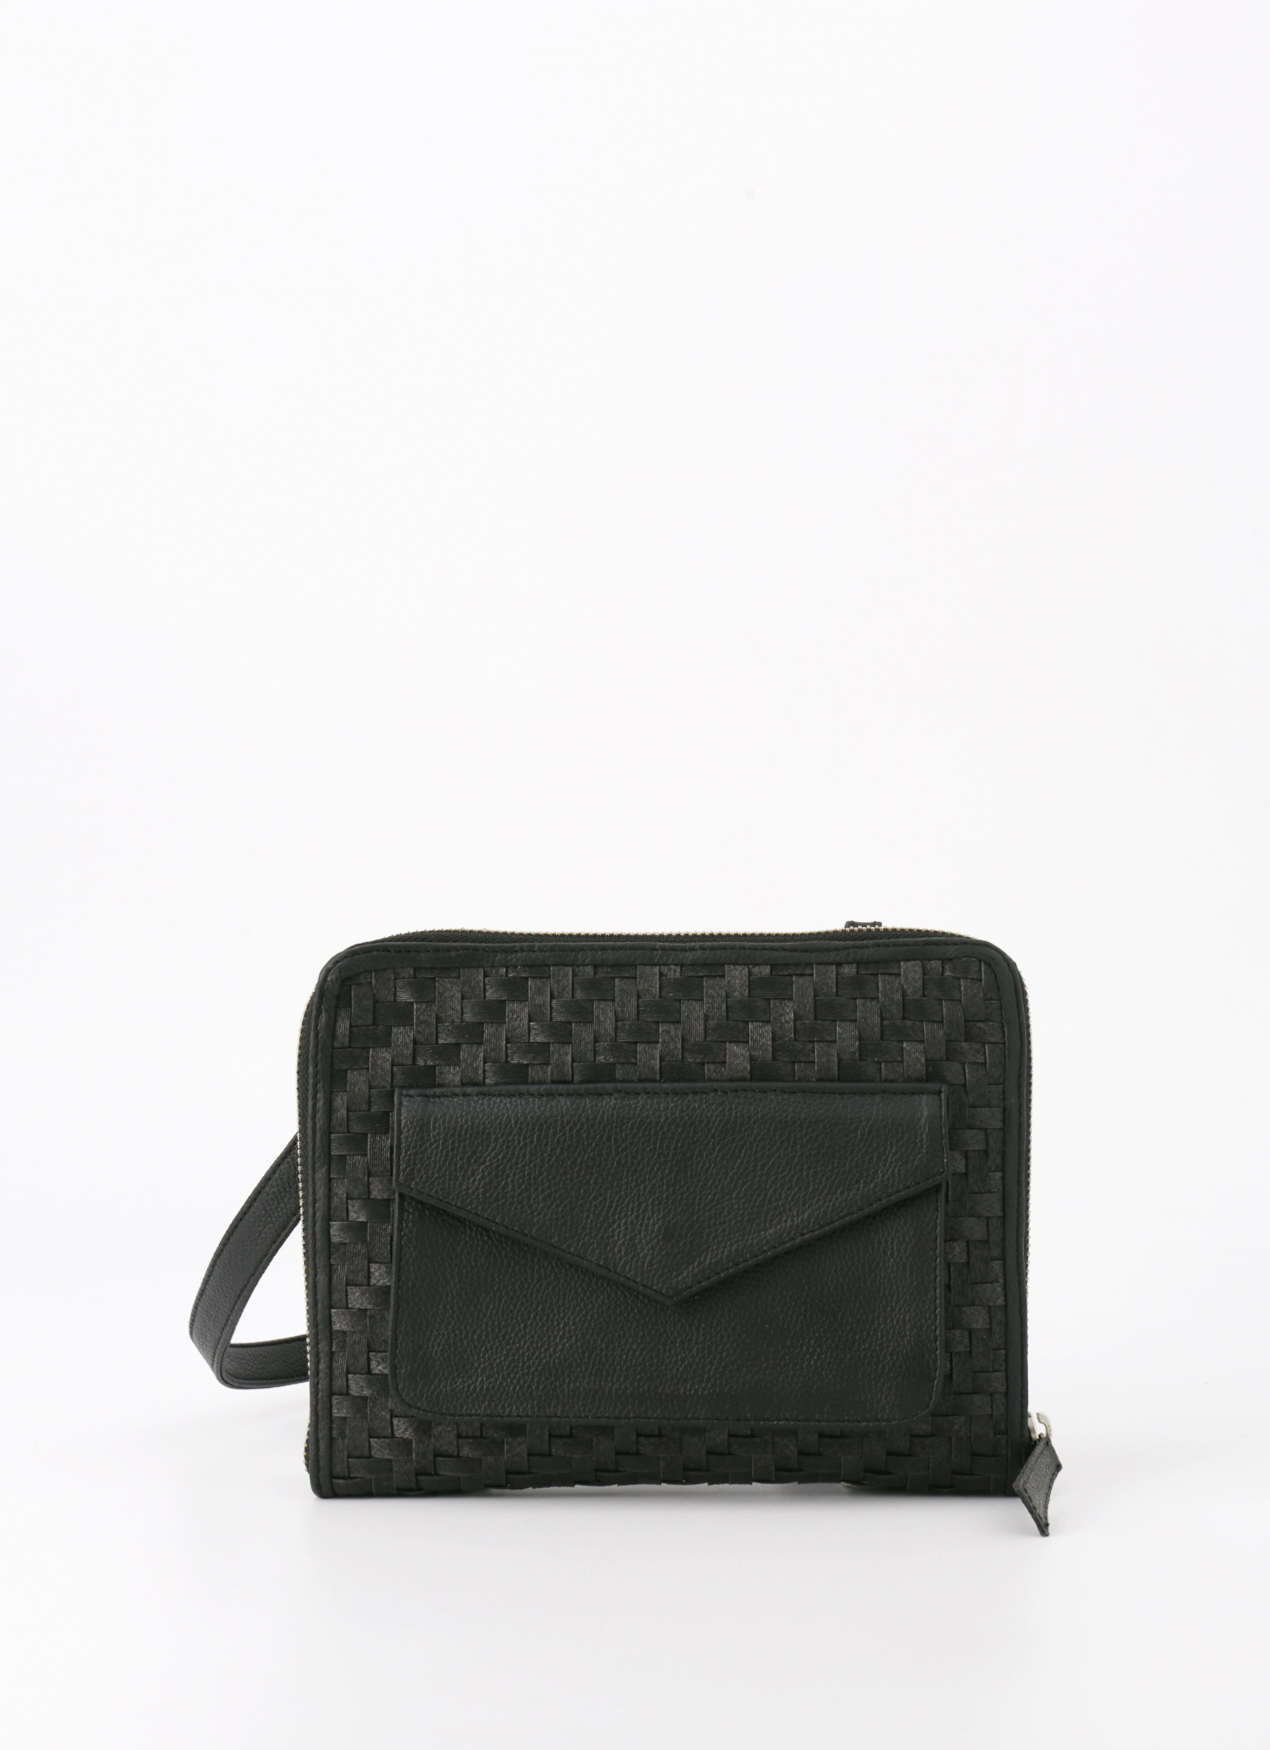 Chameo Couture Leah in Black